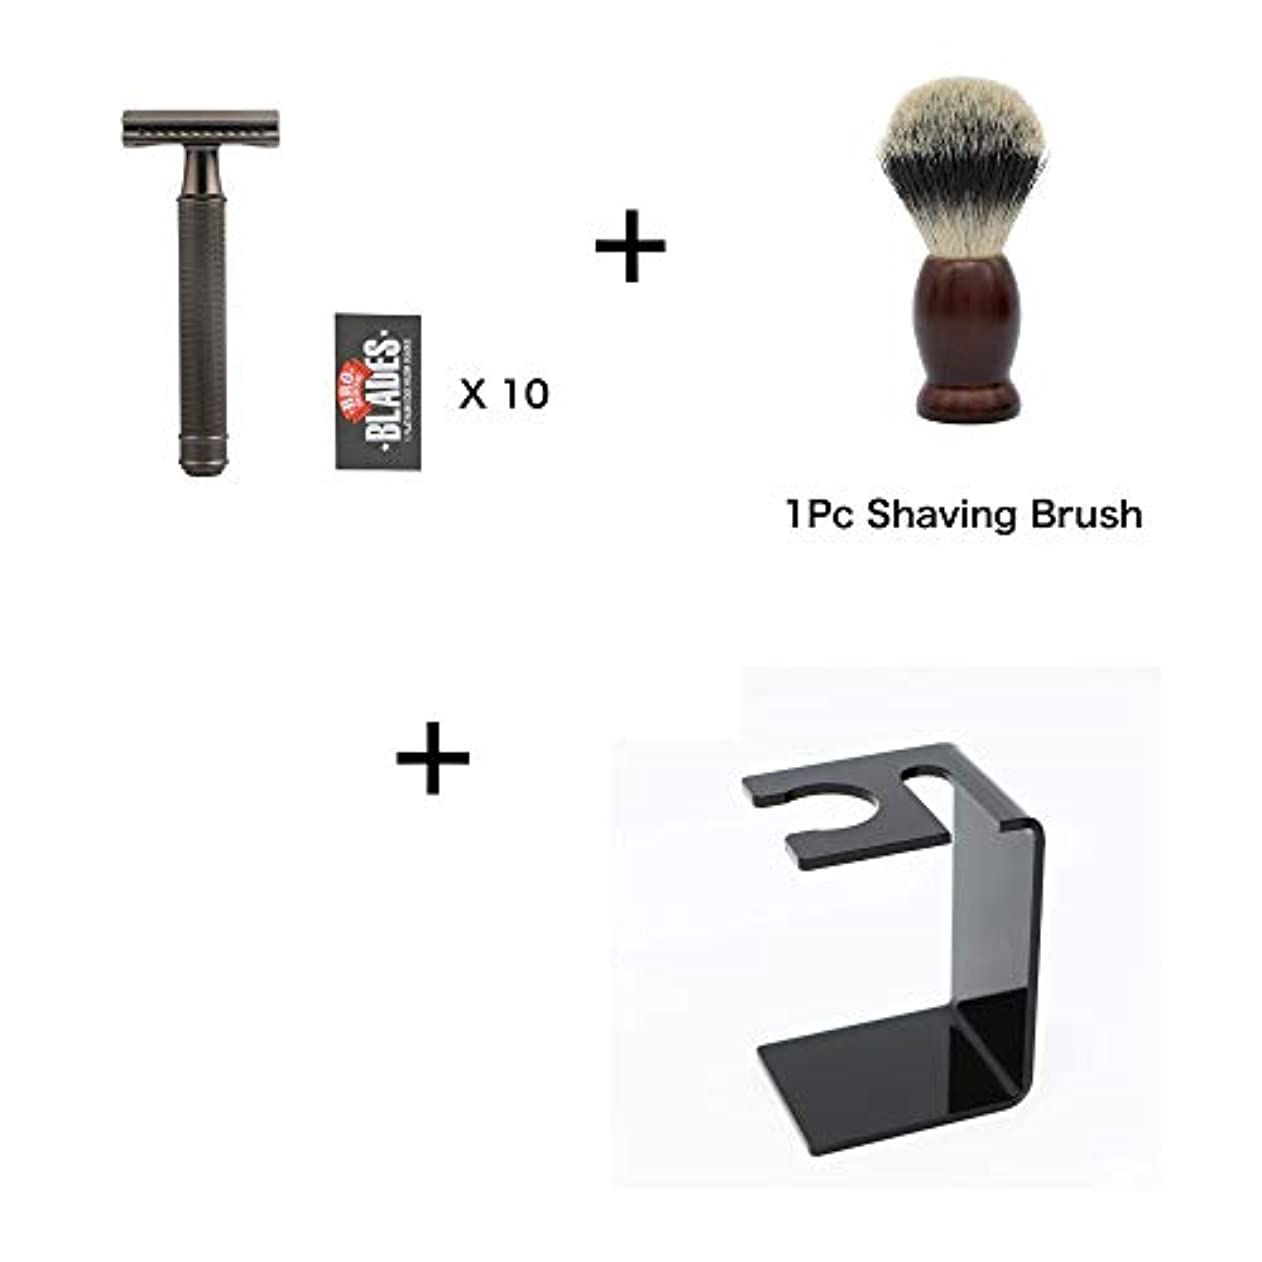 目の前のうぬぼれコットンMen's Shaving Kit, Double Edge Classic Manual Razor + Shaving Brush + Razor And Shaving Brush Holder + 10 Pcs...